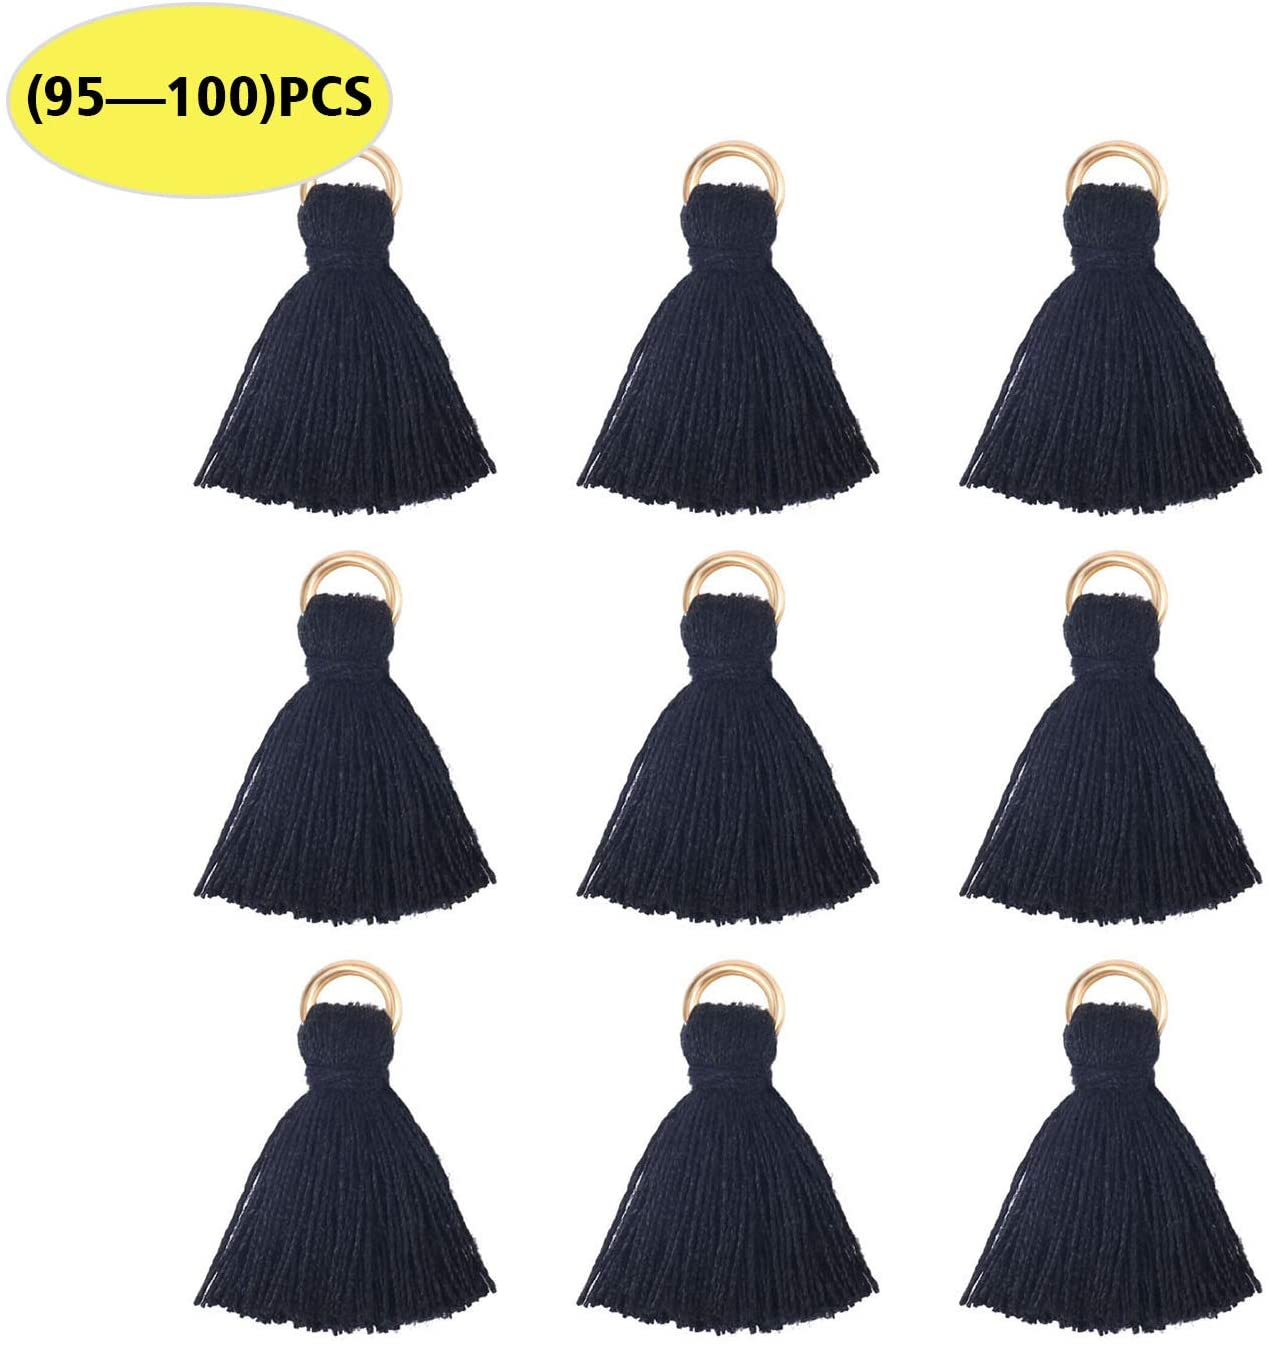 ALEXCRAFT Wholesale Mini Black Tassel Charms Little Short Cotton Thread Tassel Supplies for Crafts and Jewelry Making(95-100PCS)